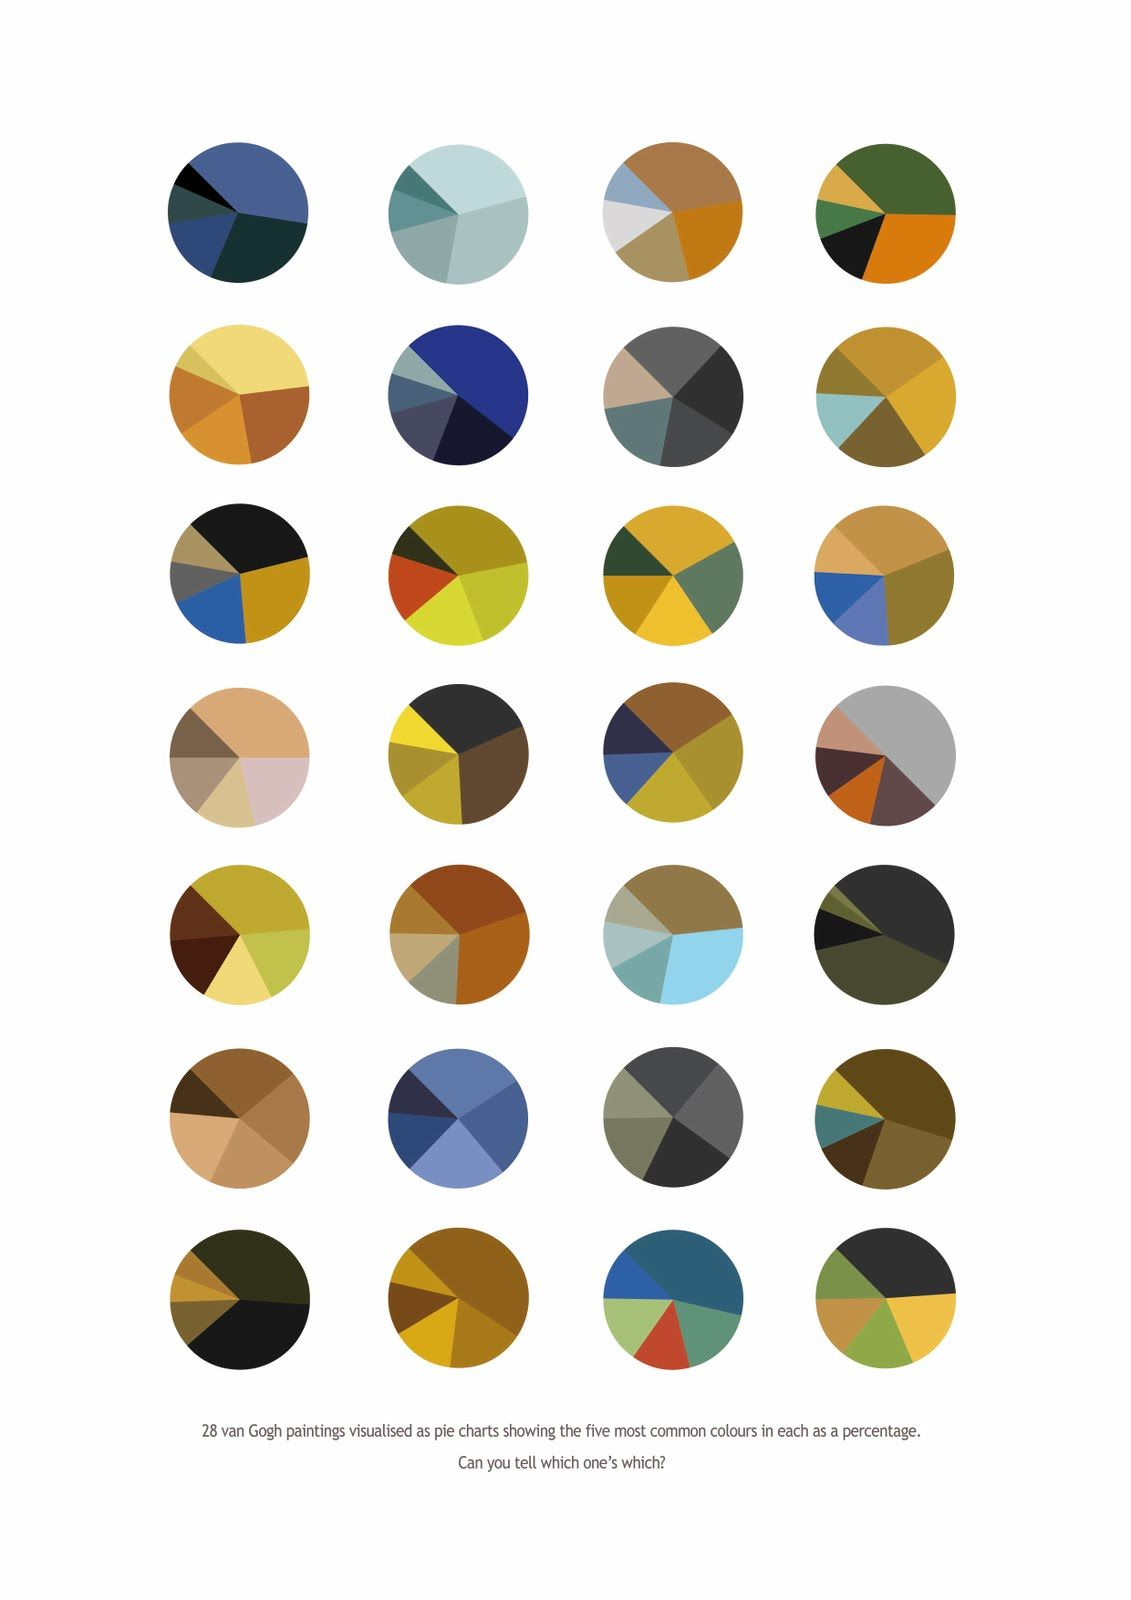 Most common colours used in Van Gogh paintings